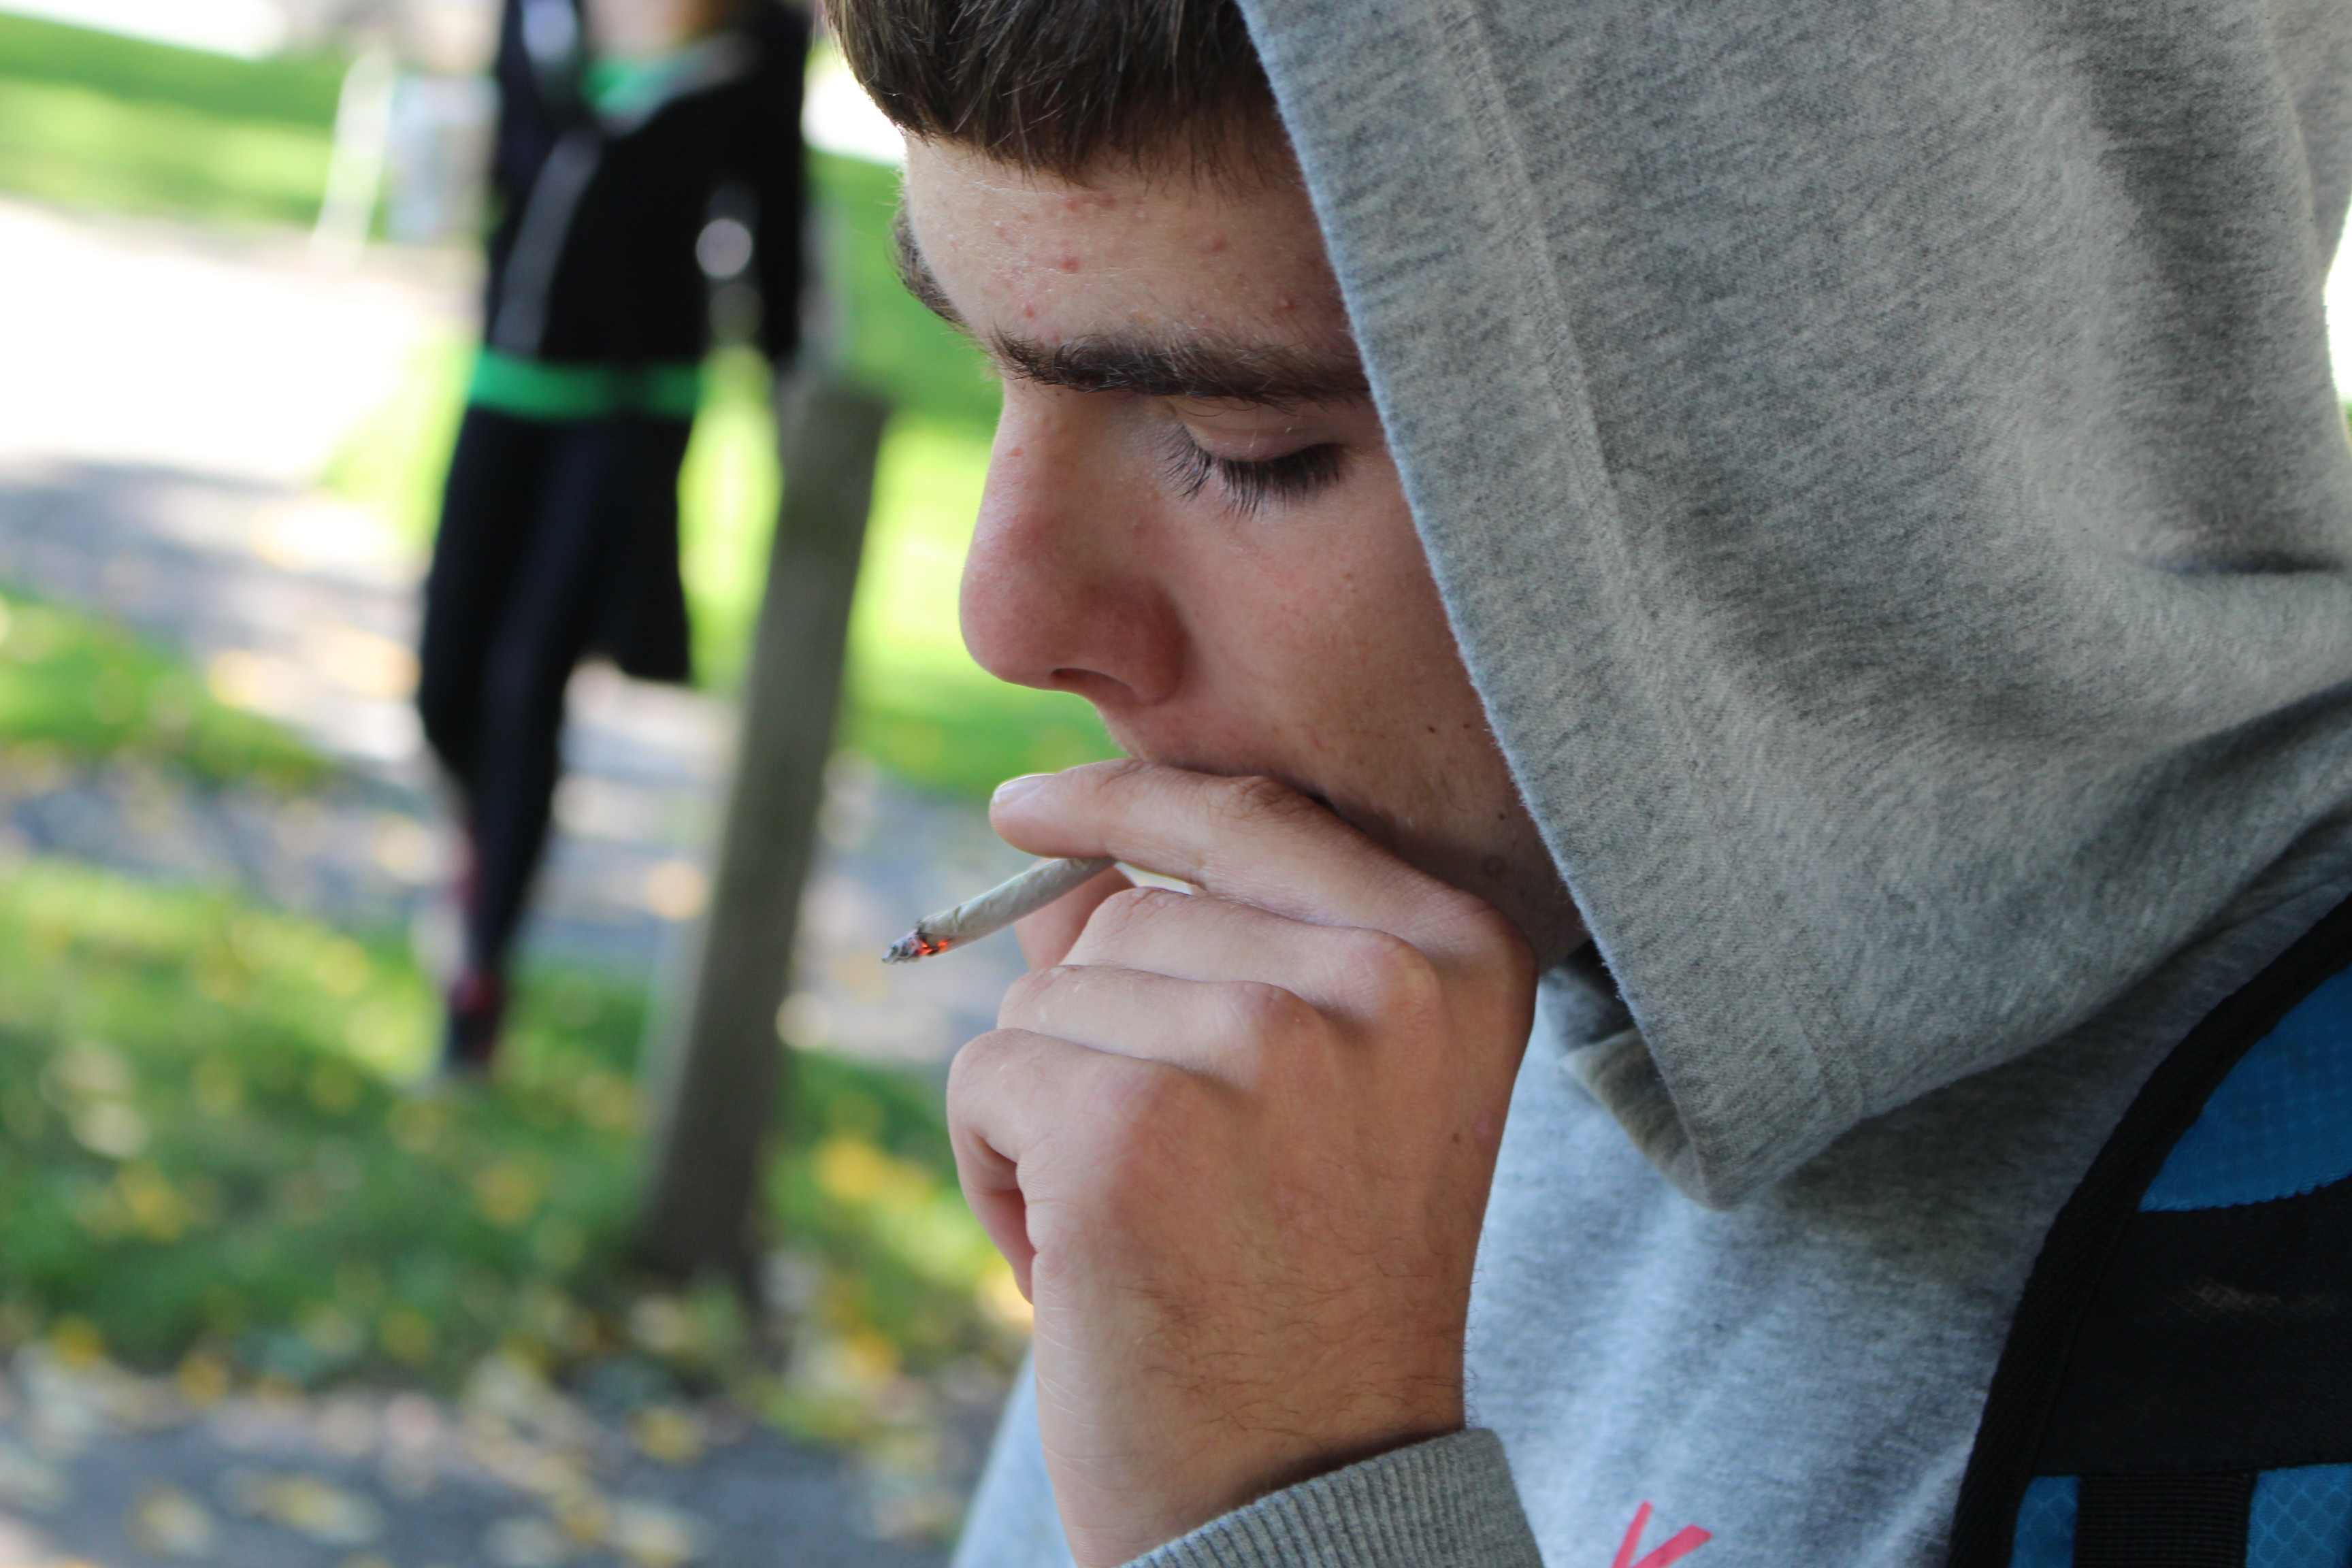 BlackburnNews.com file photo of someone smoking marijuana. (Photo by Jason Viau)